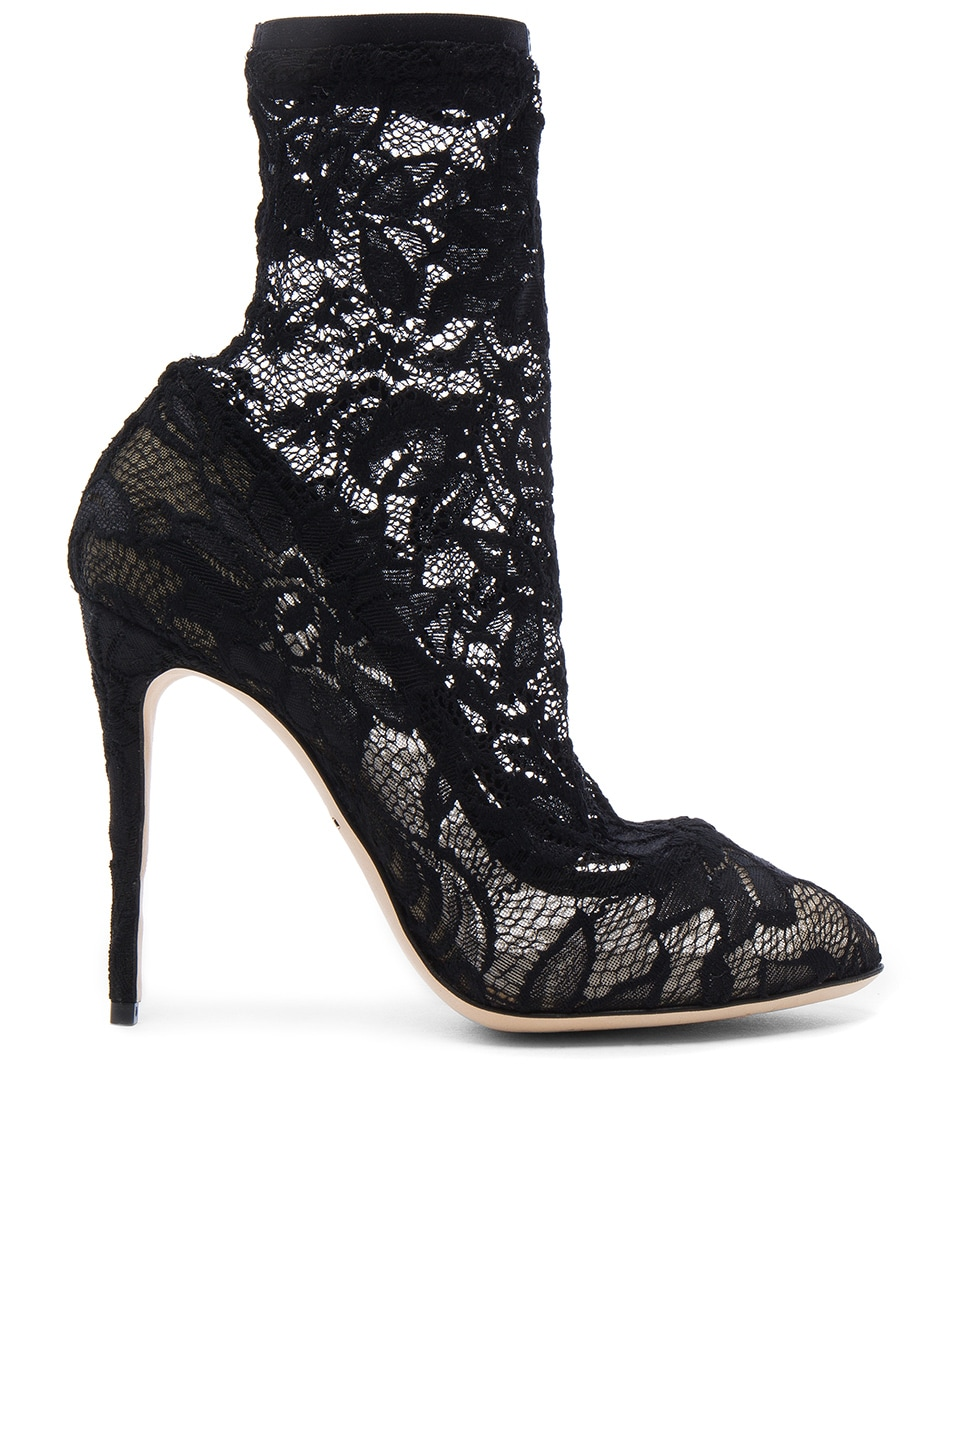 Image 1 of Dolce & Gabbana Stretch Lace Booties in Black